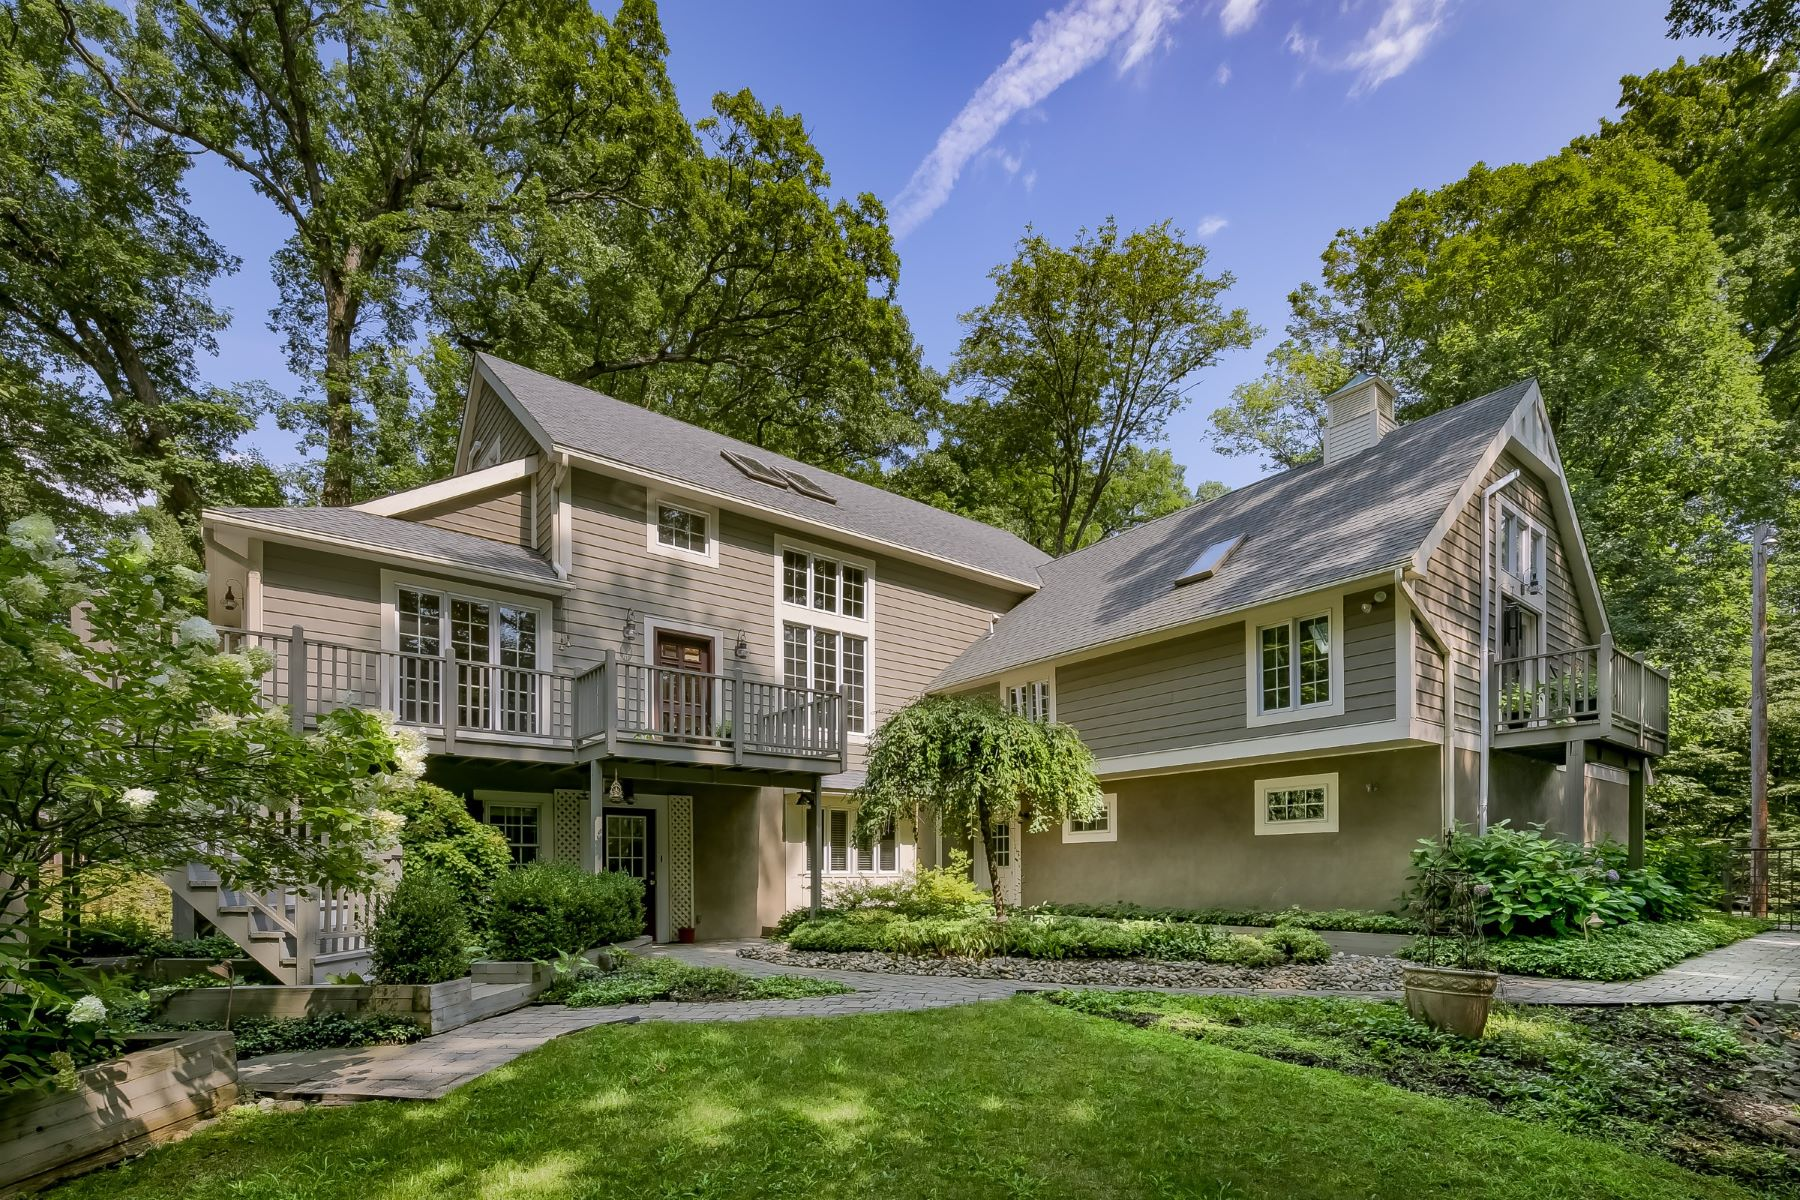 Single Family Homes for Sale at Stunning Custom Retreat 55 Mt Airy Road Basking Ridge, New Jersey 07920 United States